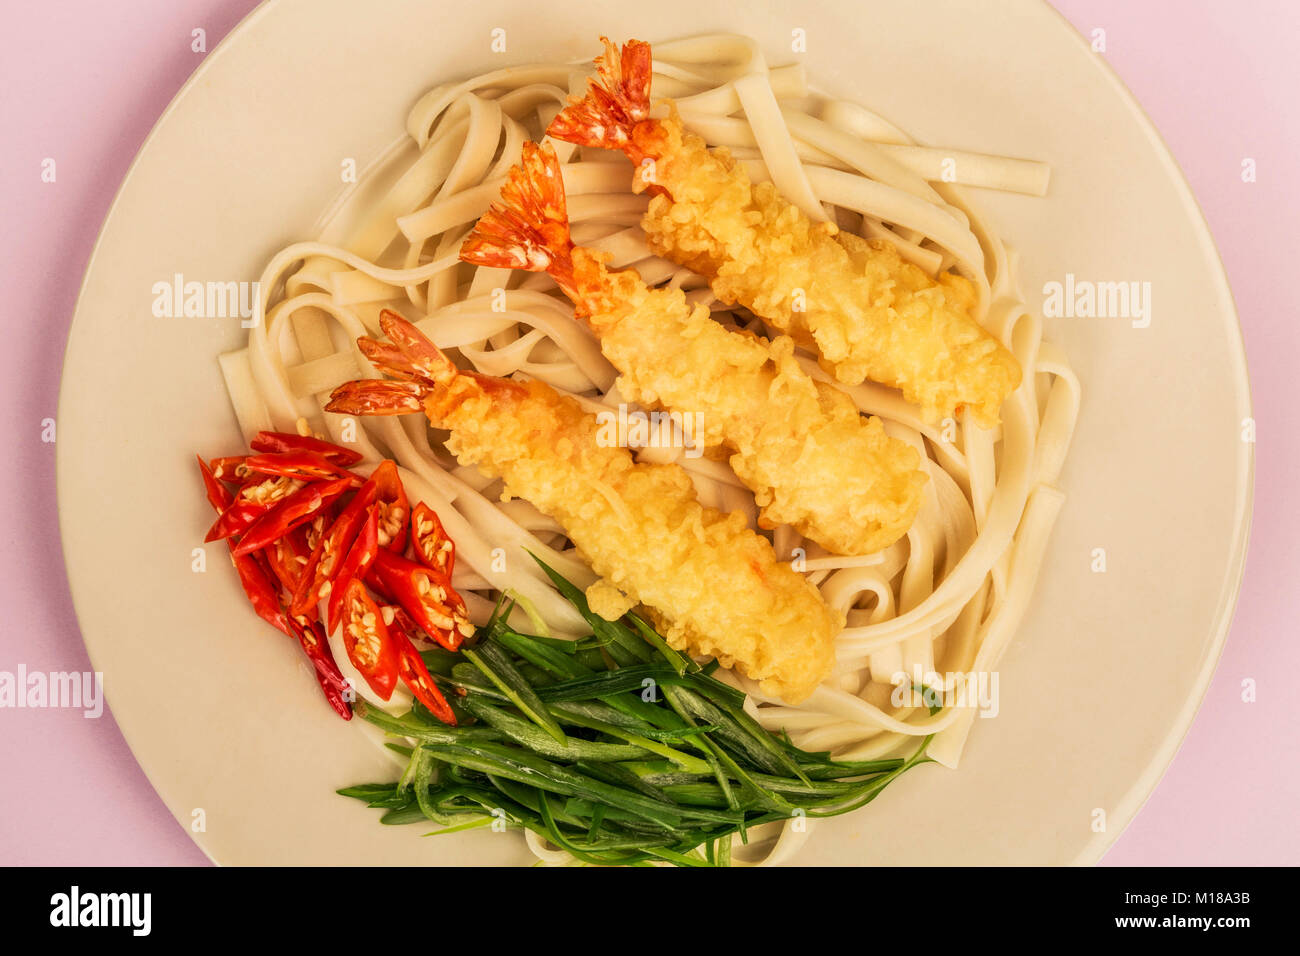 Japanese Style Tempura Prawns With Udon Noodles Chilli and Spring Onions Against A Lilac Background Stock Photo